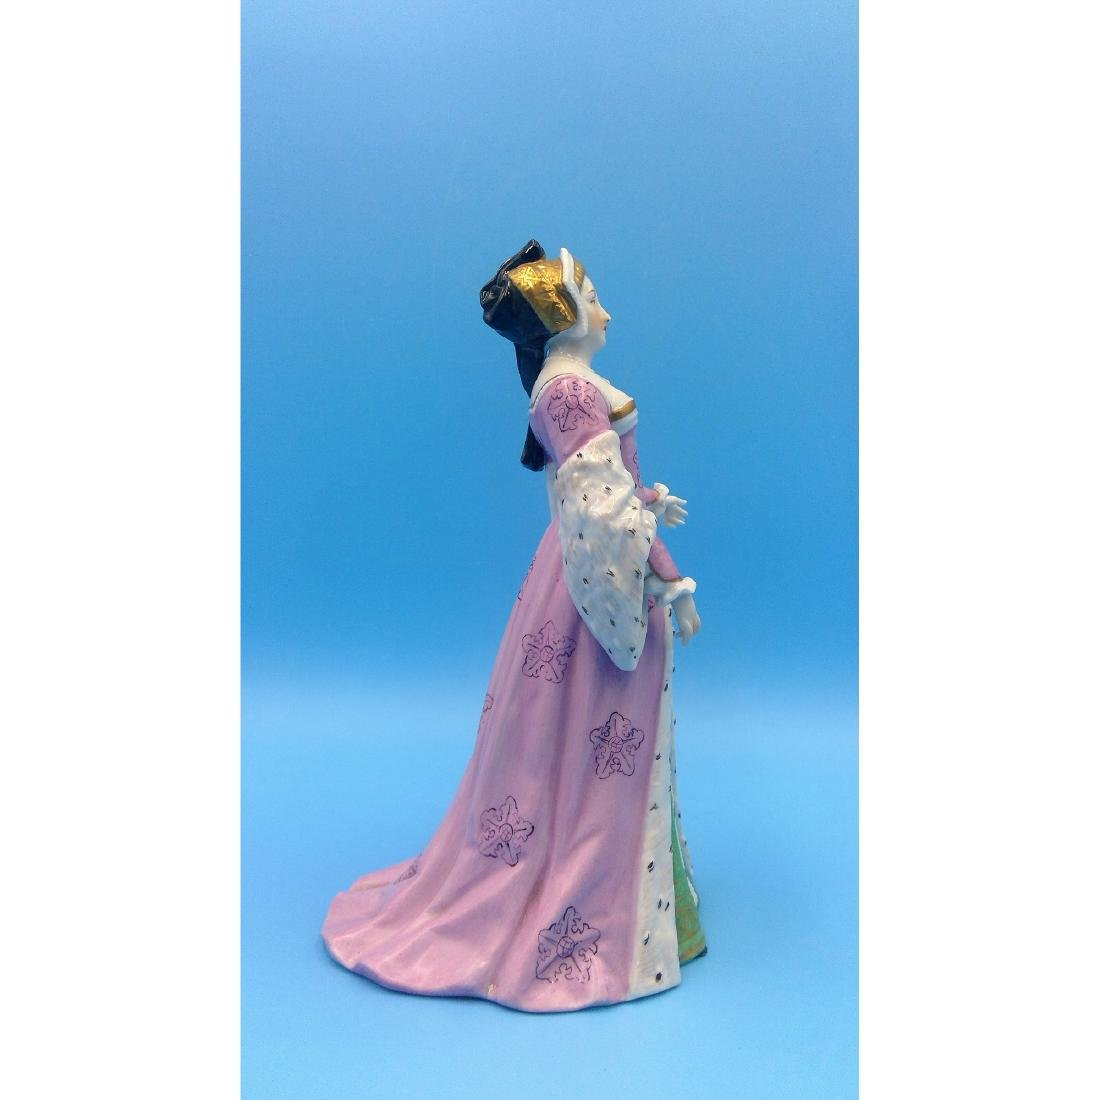 CARL THIEME GERMAN PORCELAIN FIGURINE PRINCESS - 4